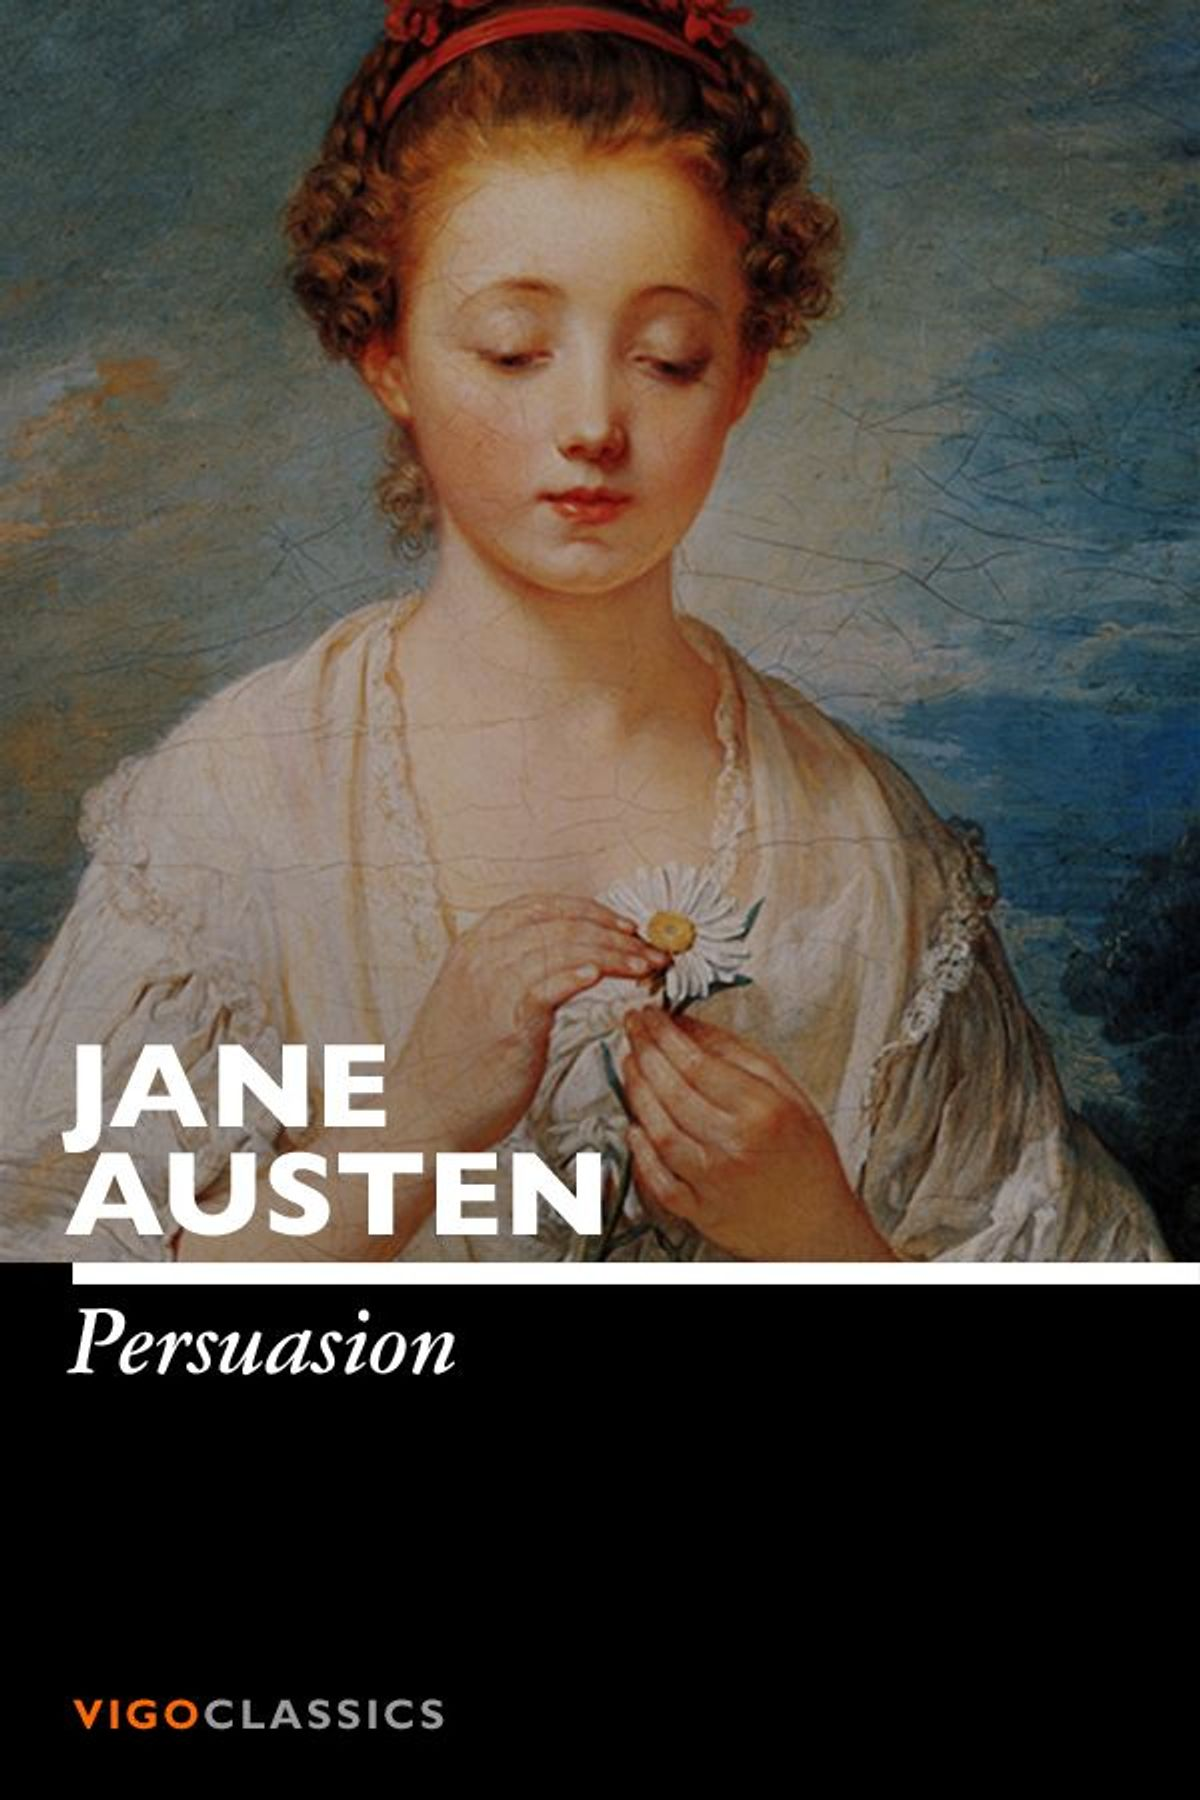 essays on jane austens persuasion Jane austen's works have attracted significant critical interest, and monographs and collections of essays on every aspect of her life, times, and writing abound good general overviews are, however, rarer.